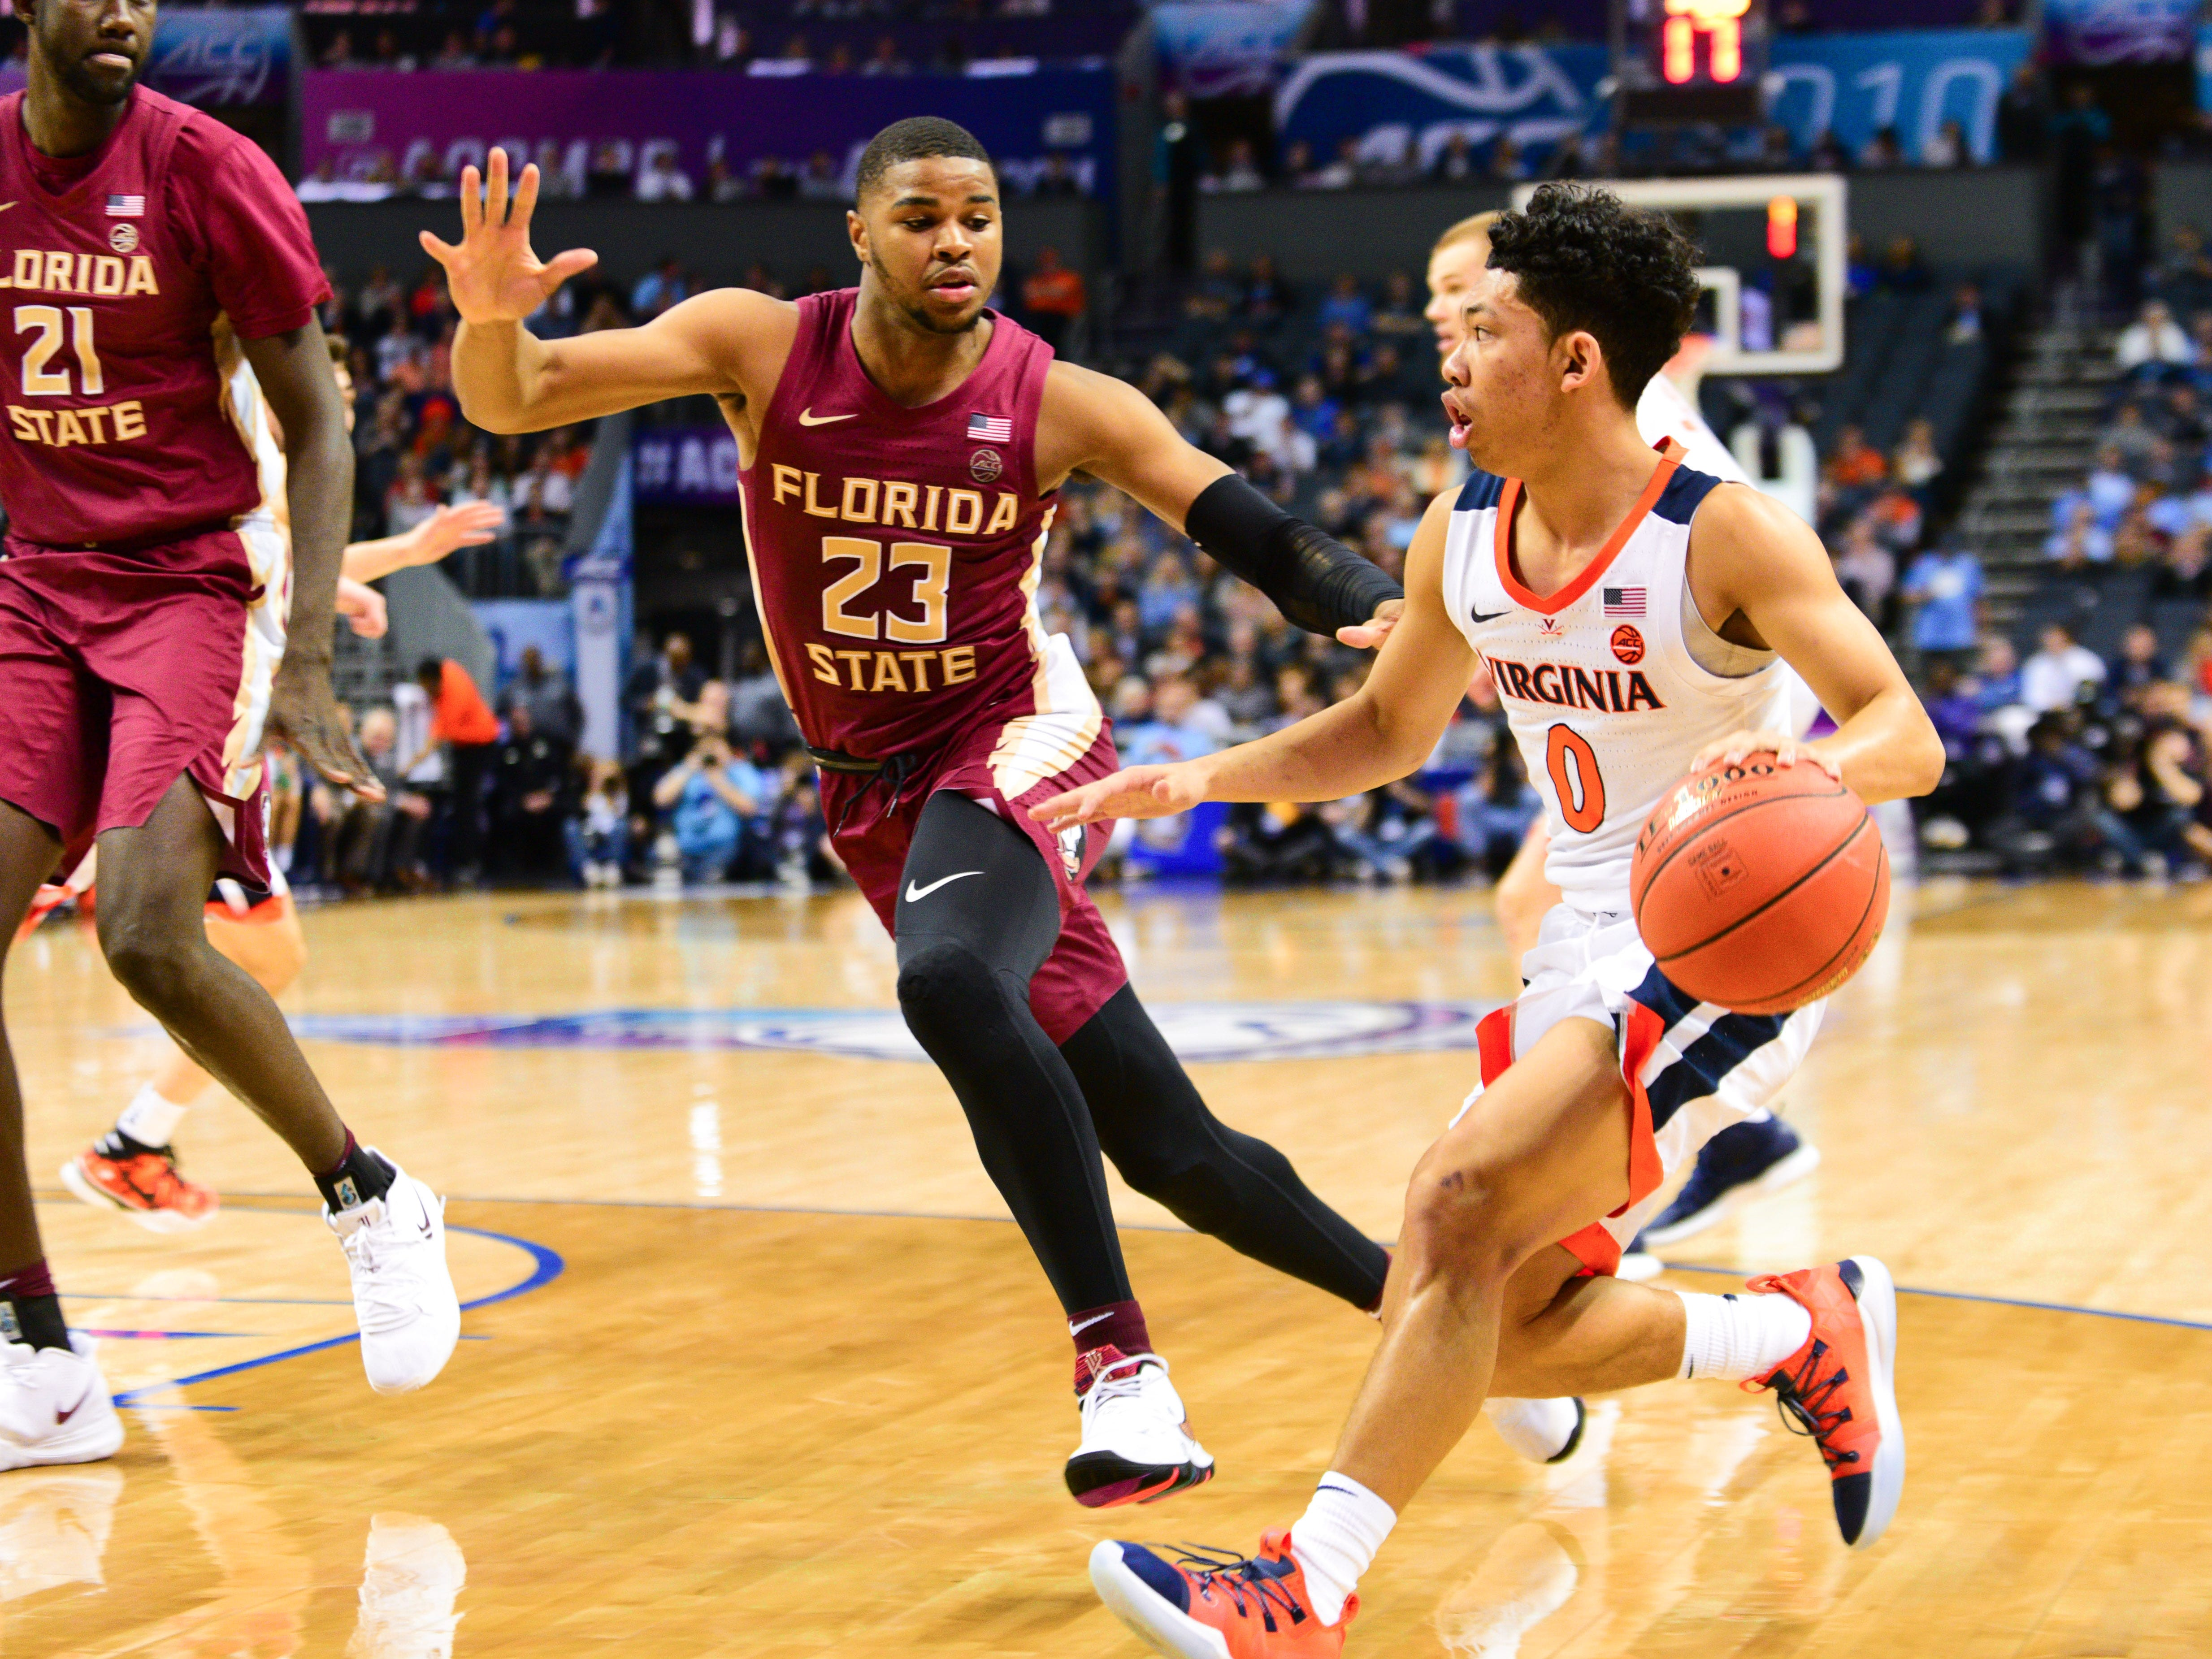 Florida State sophomore guard M.J. Walker, left, stops Virginia freshman guard Kihei Clark from advancing during the first half of the ACC Tournament Semifinals at the Spectrum Center in Charlotte on Friday.